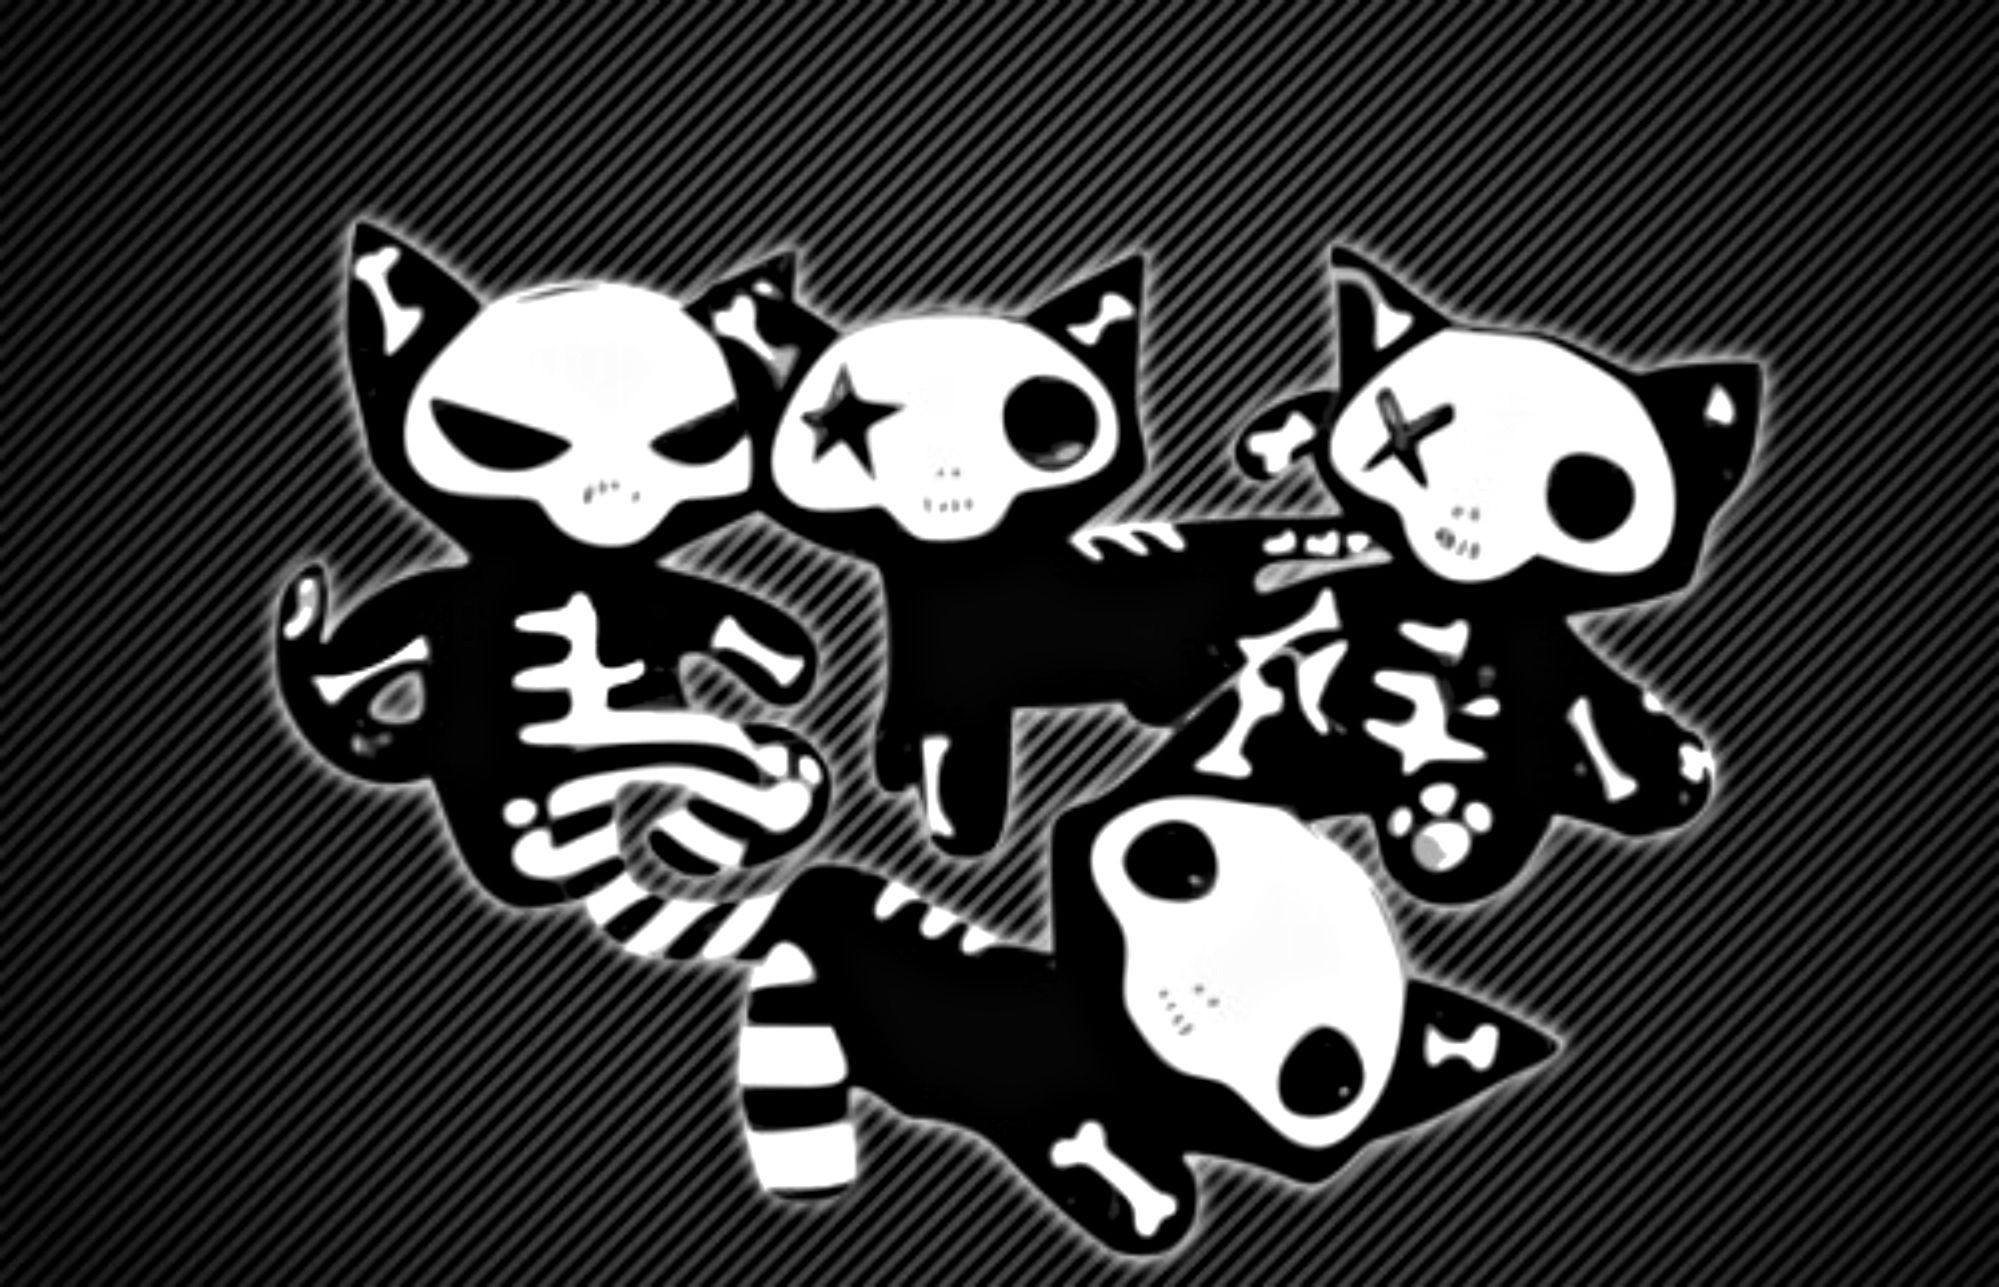 Cute Cat Wallpapers High Resolution 29 Photos Of Girly Skull In Hdq